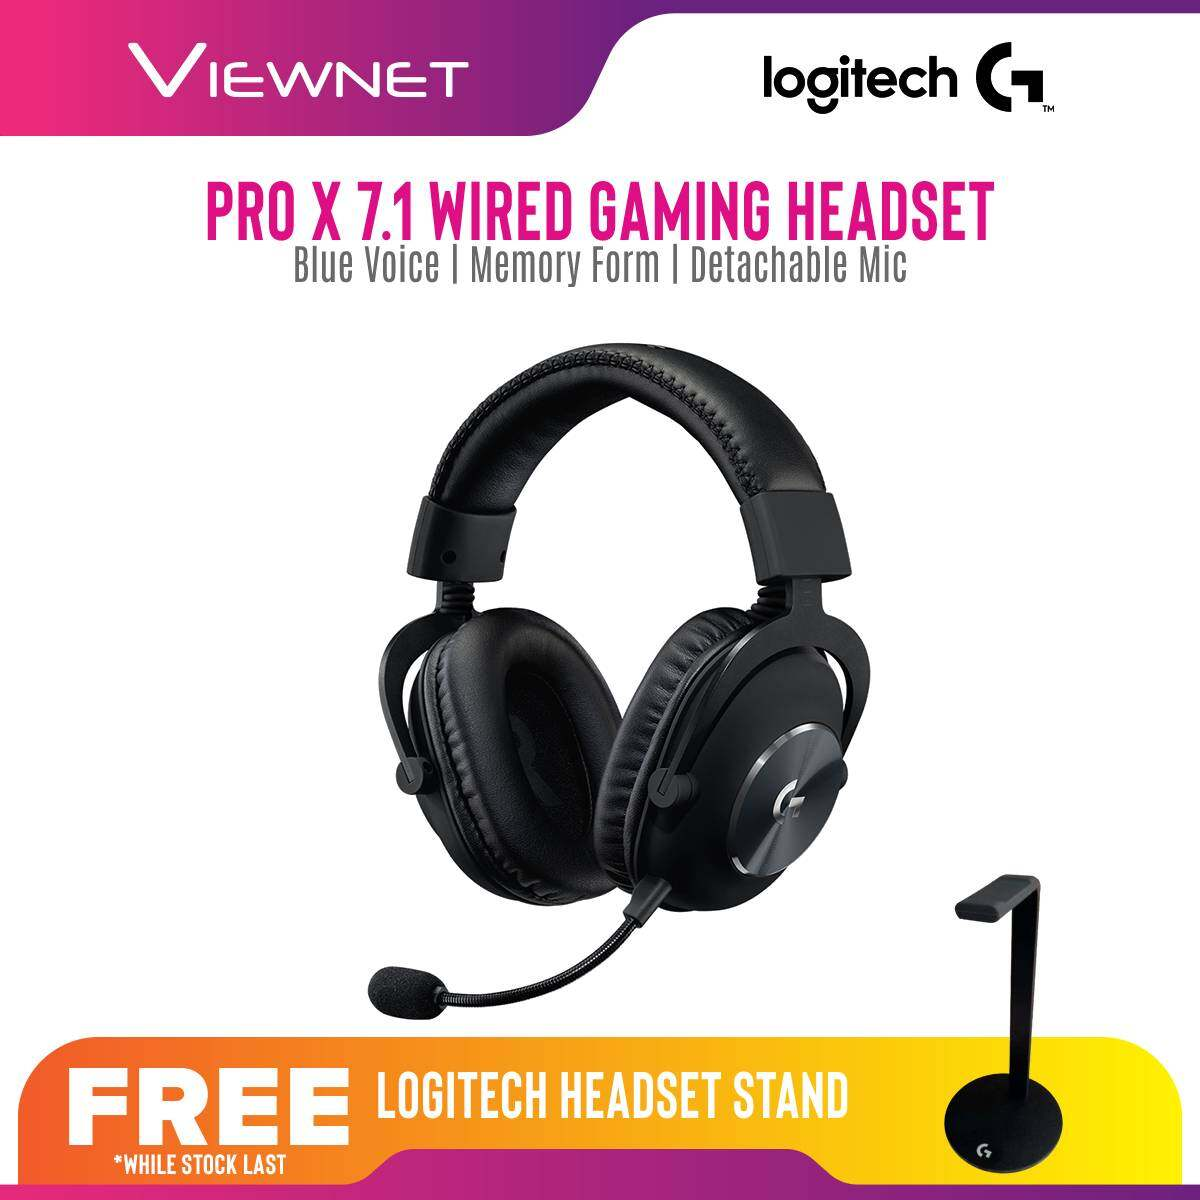 Logitech G PRO X 7.1 (981-000820) Gaming Headset With Blue Voice, Memory Foam, Durable Build